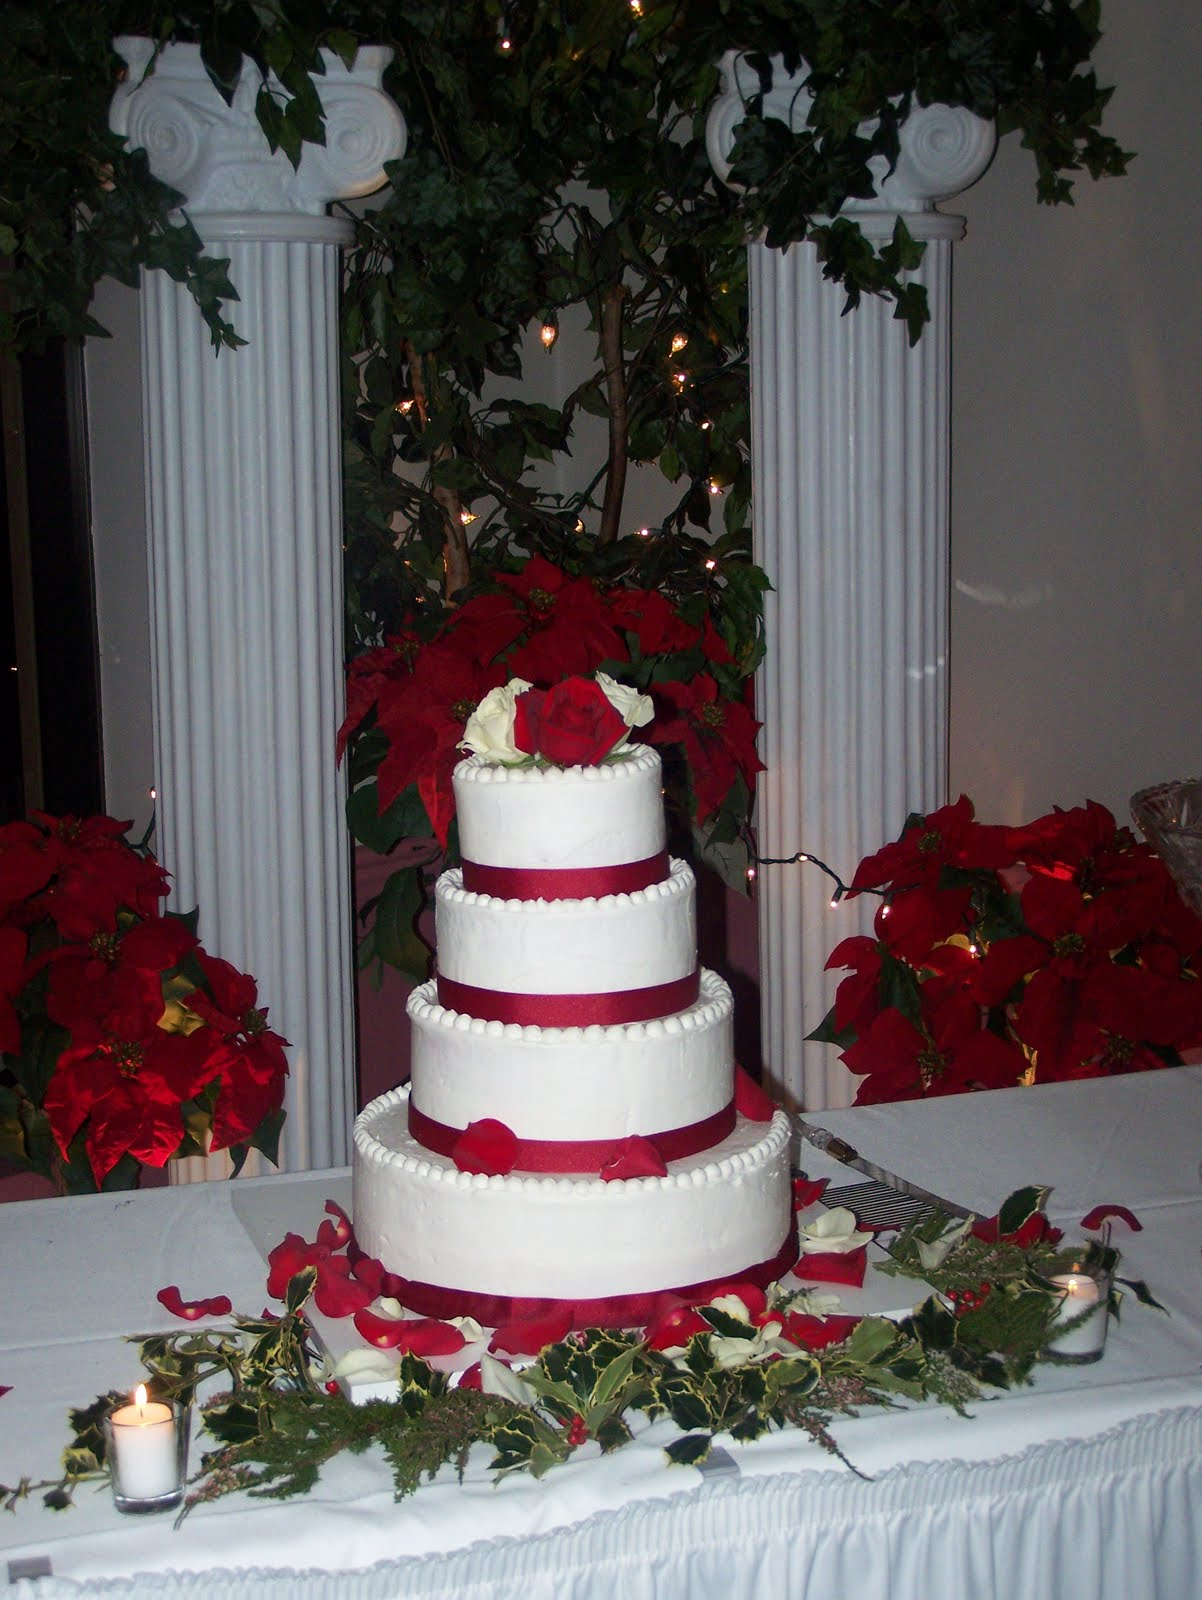 The Business Of Weddings How To Cut A Wedding Cake - Weddings Cake Pictures